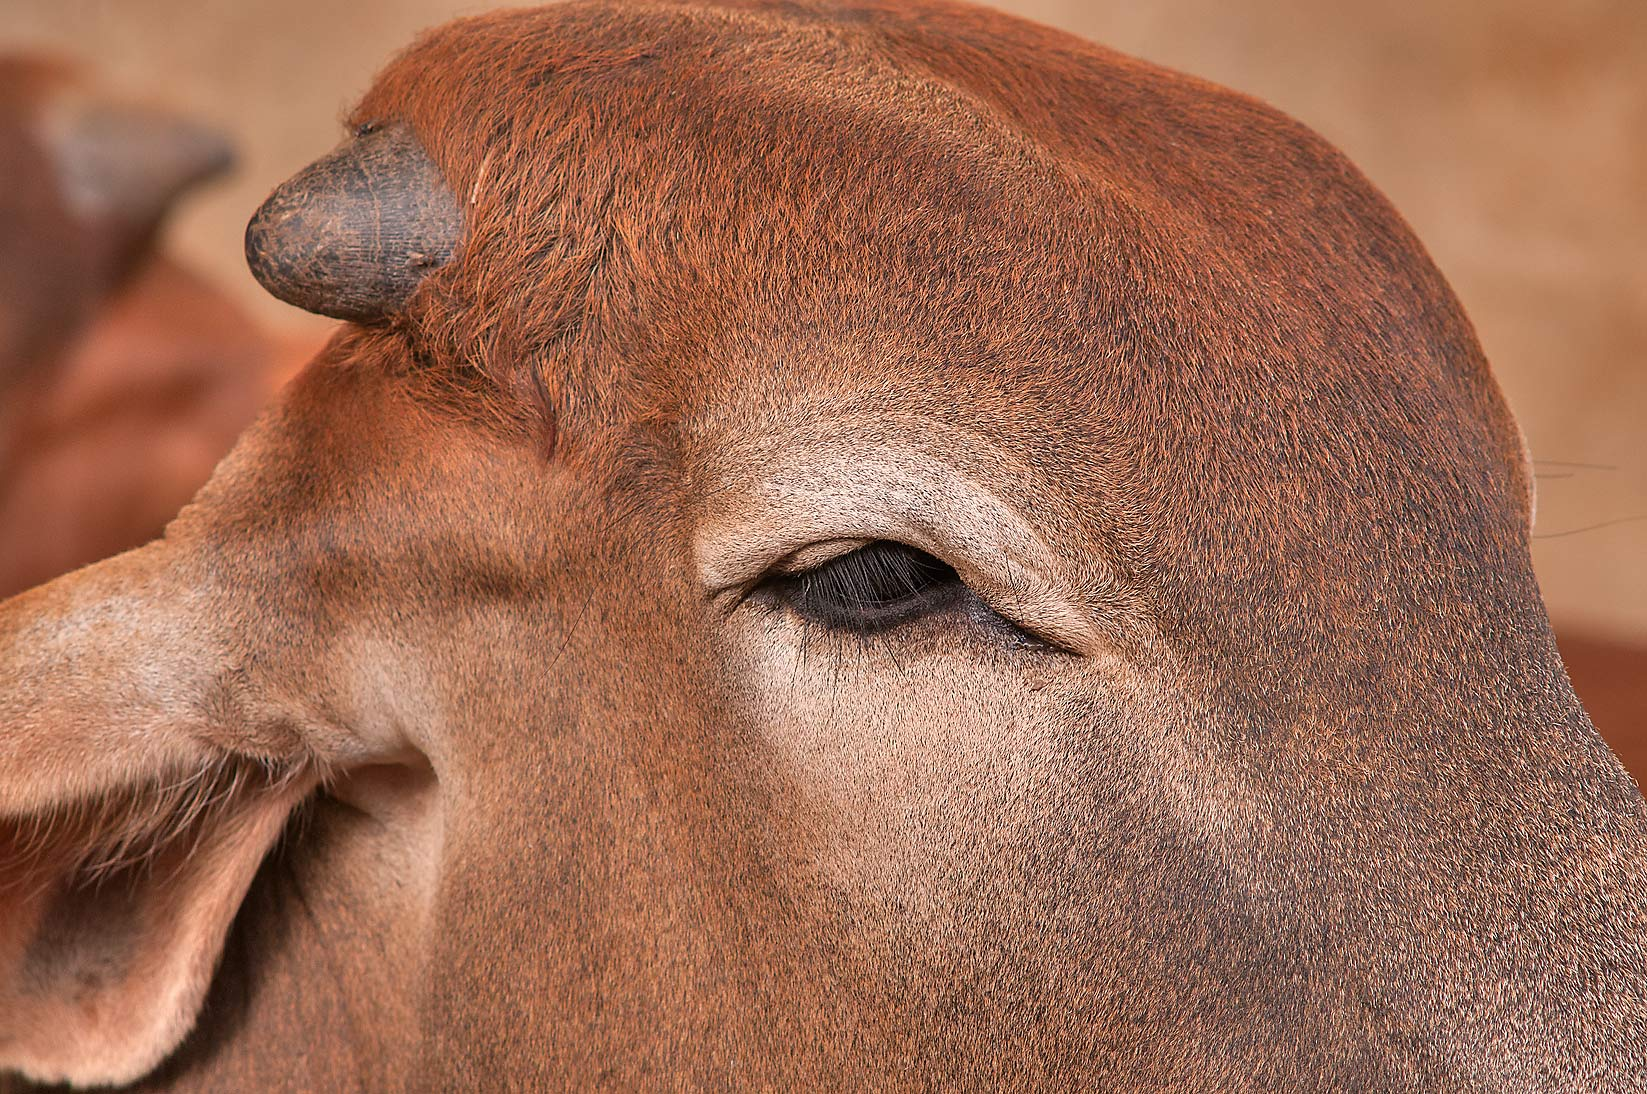 Head of a brown cow in livestock markets in Abu Hamour. Doha, Qatar